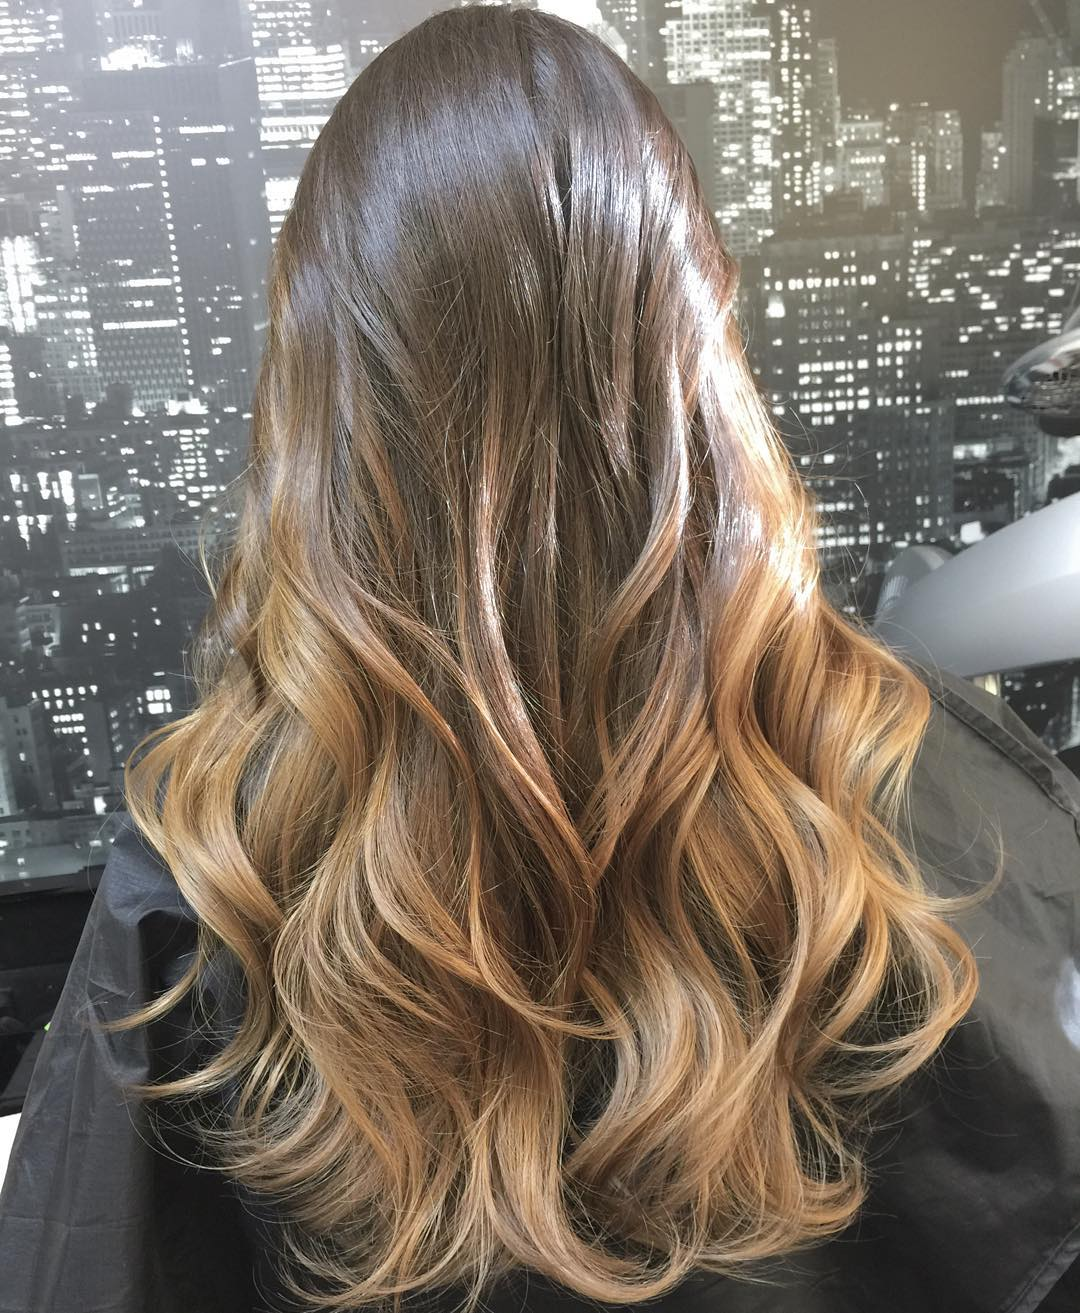 60 Best Ombre Hair Color Ideas for Blond, Brown, Red and ...